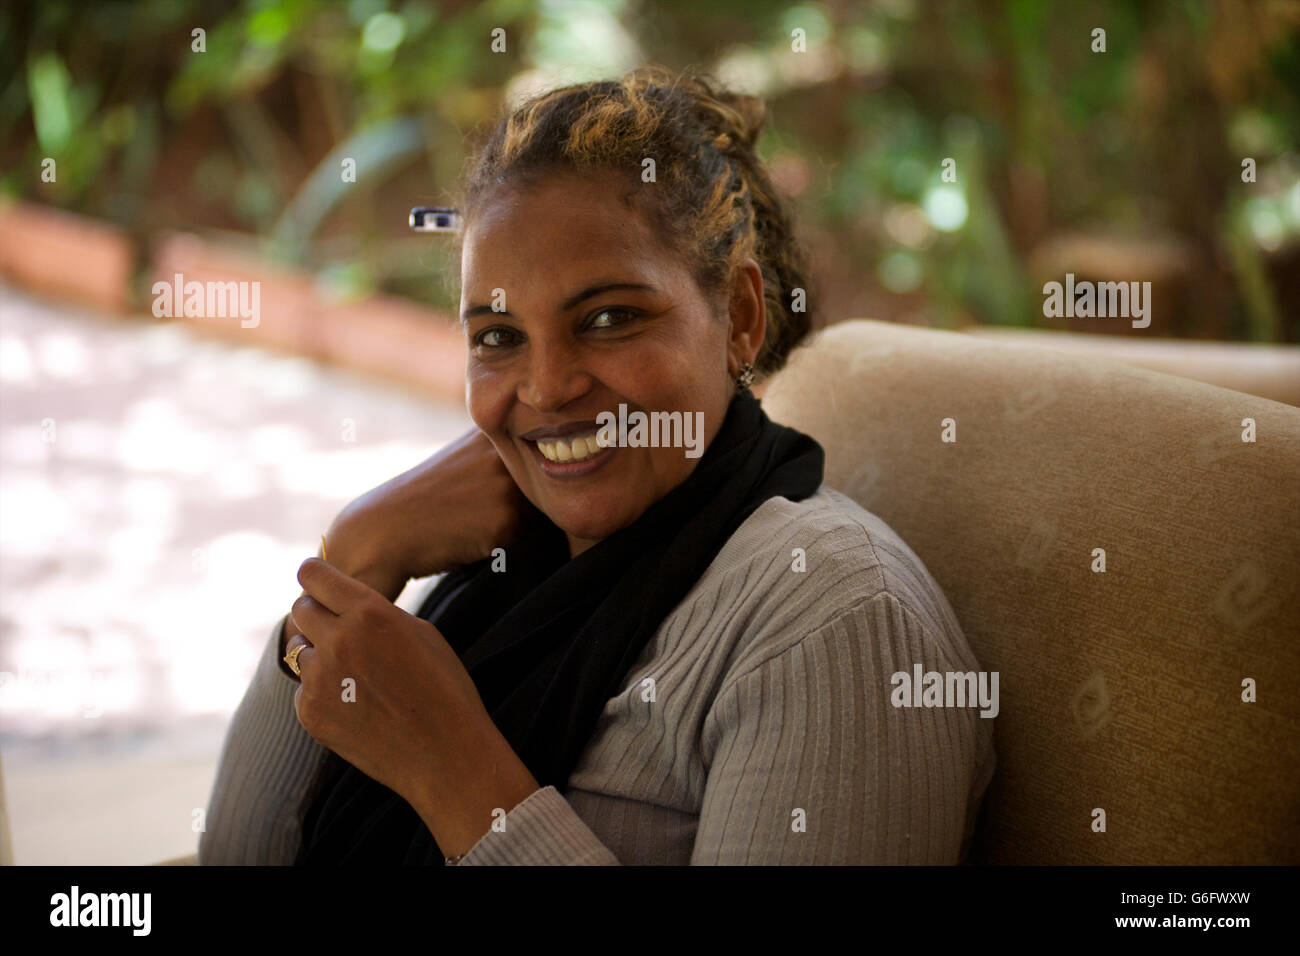 POrtrait of an Ethiopian woman smiling. Harar, Ethiopia - Stock Image